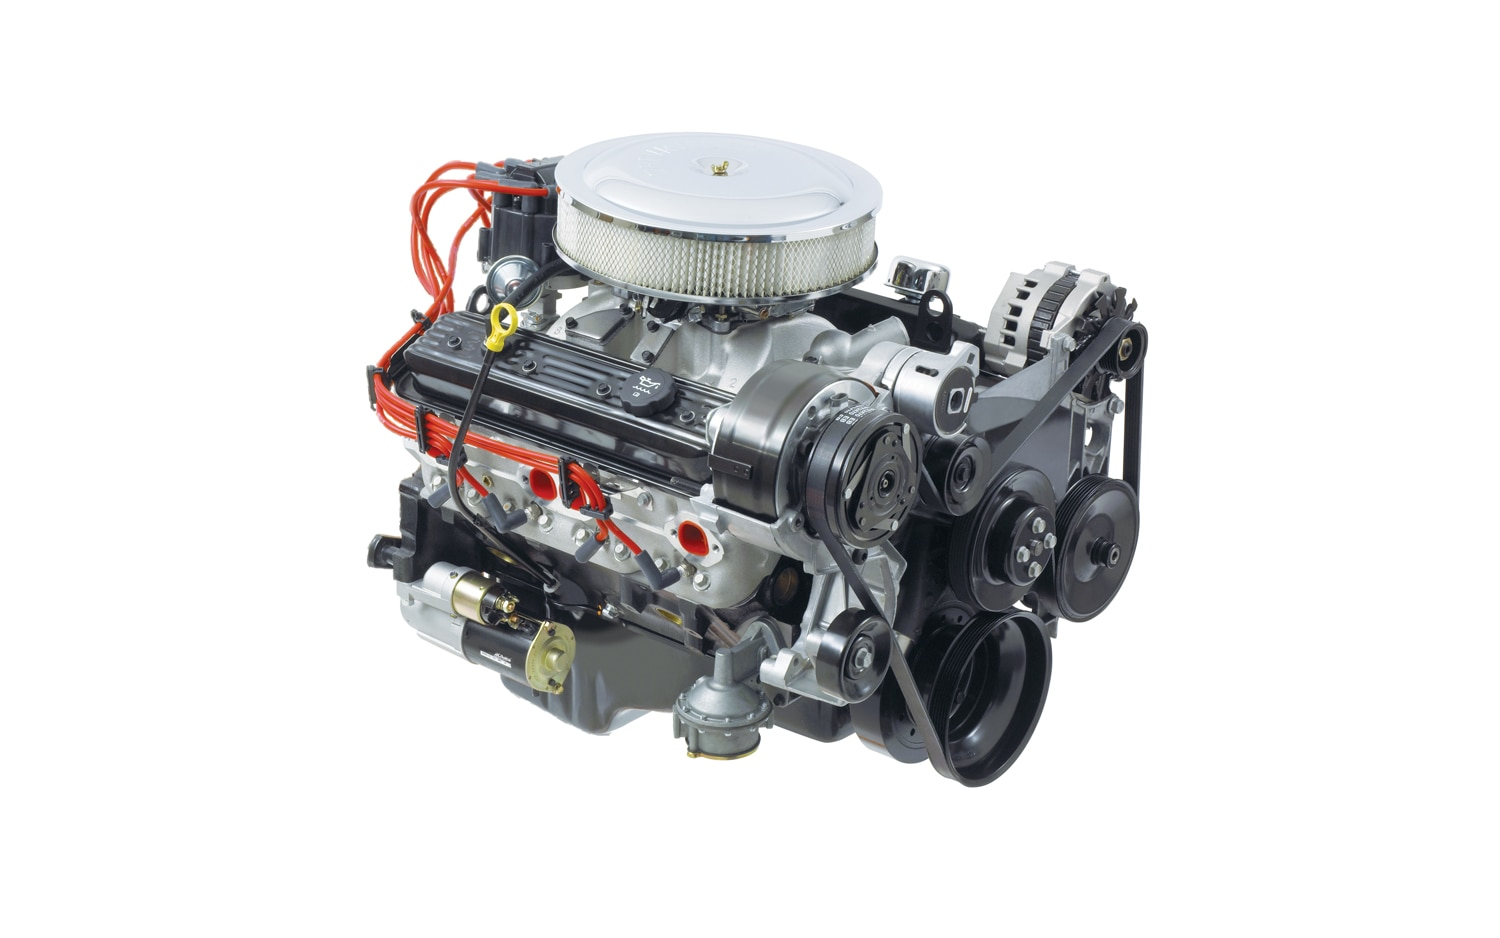 Chevrolet Engine Size Chart ✓ All About Chevrolet